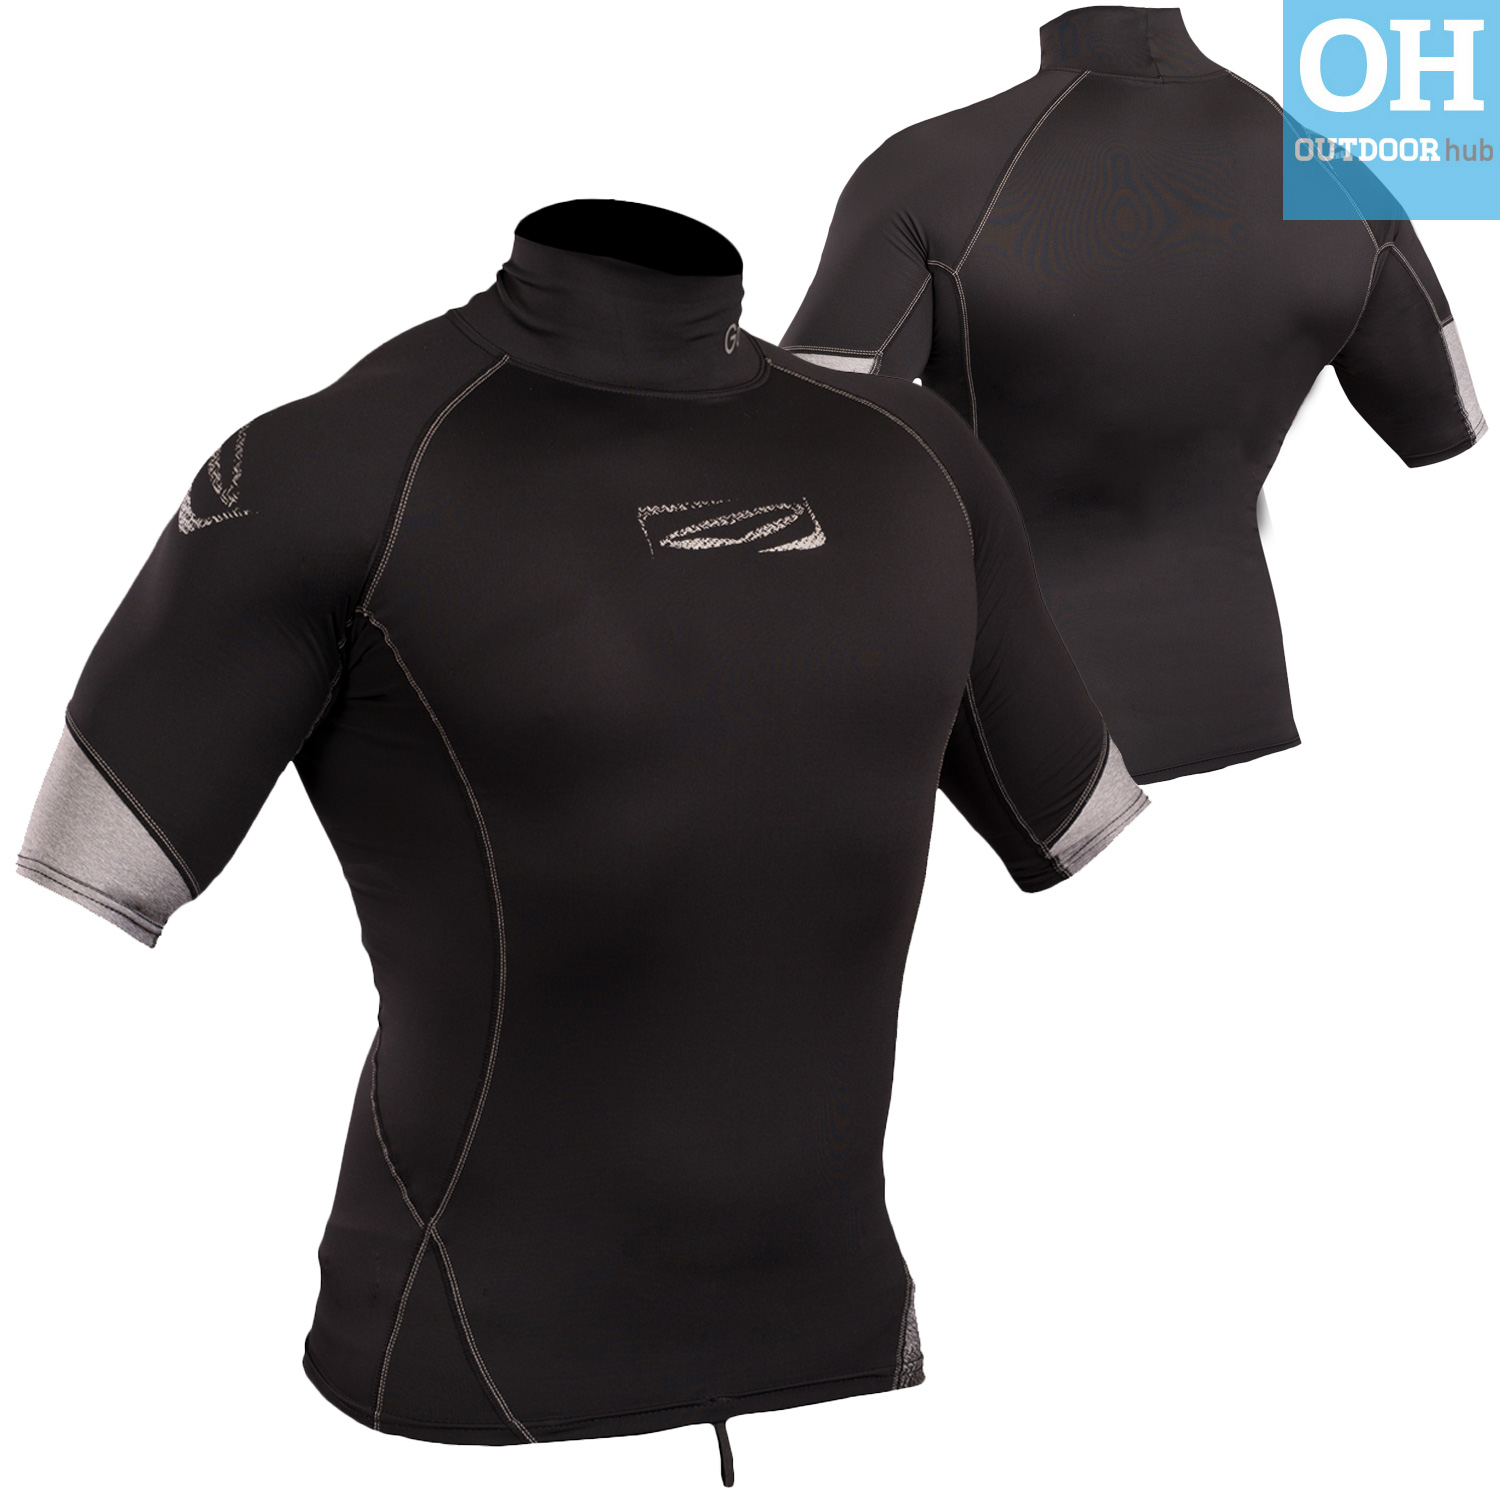 Gul-Xola-Mens-Short-Sleeve-Rash-Guard-Vest-Wetsuit-Top-UV-50-Surf-Swim-Dive thumbnail 10